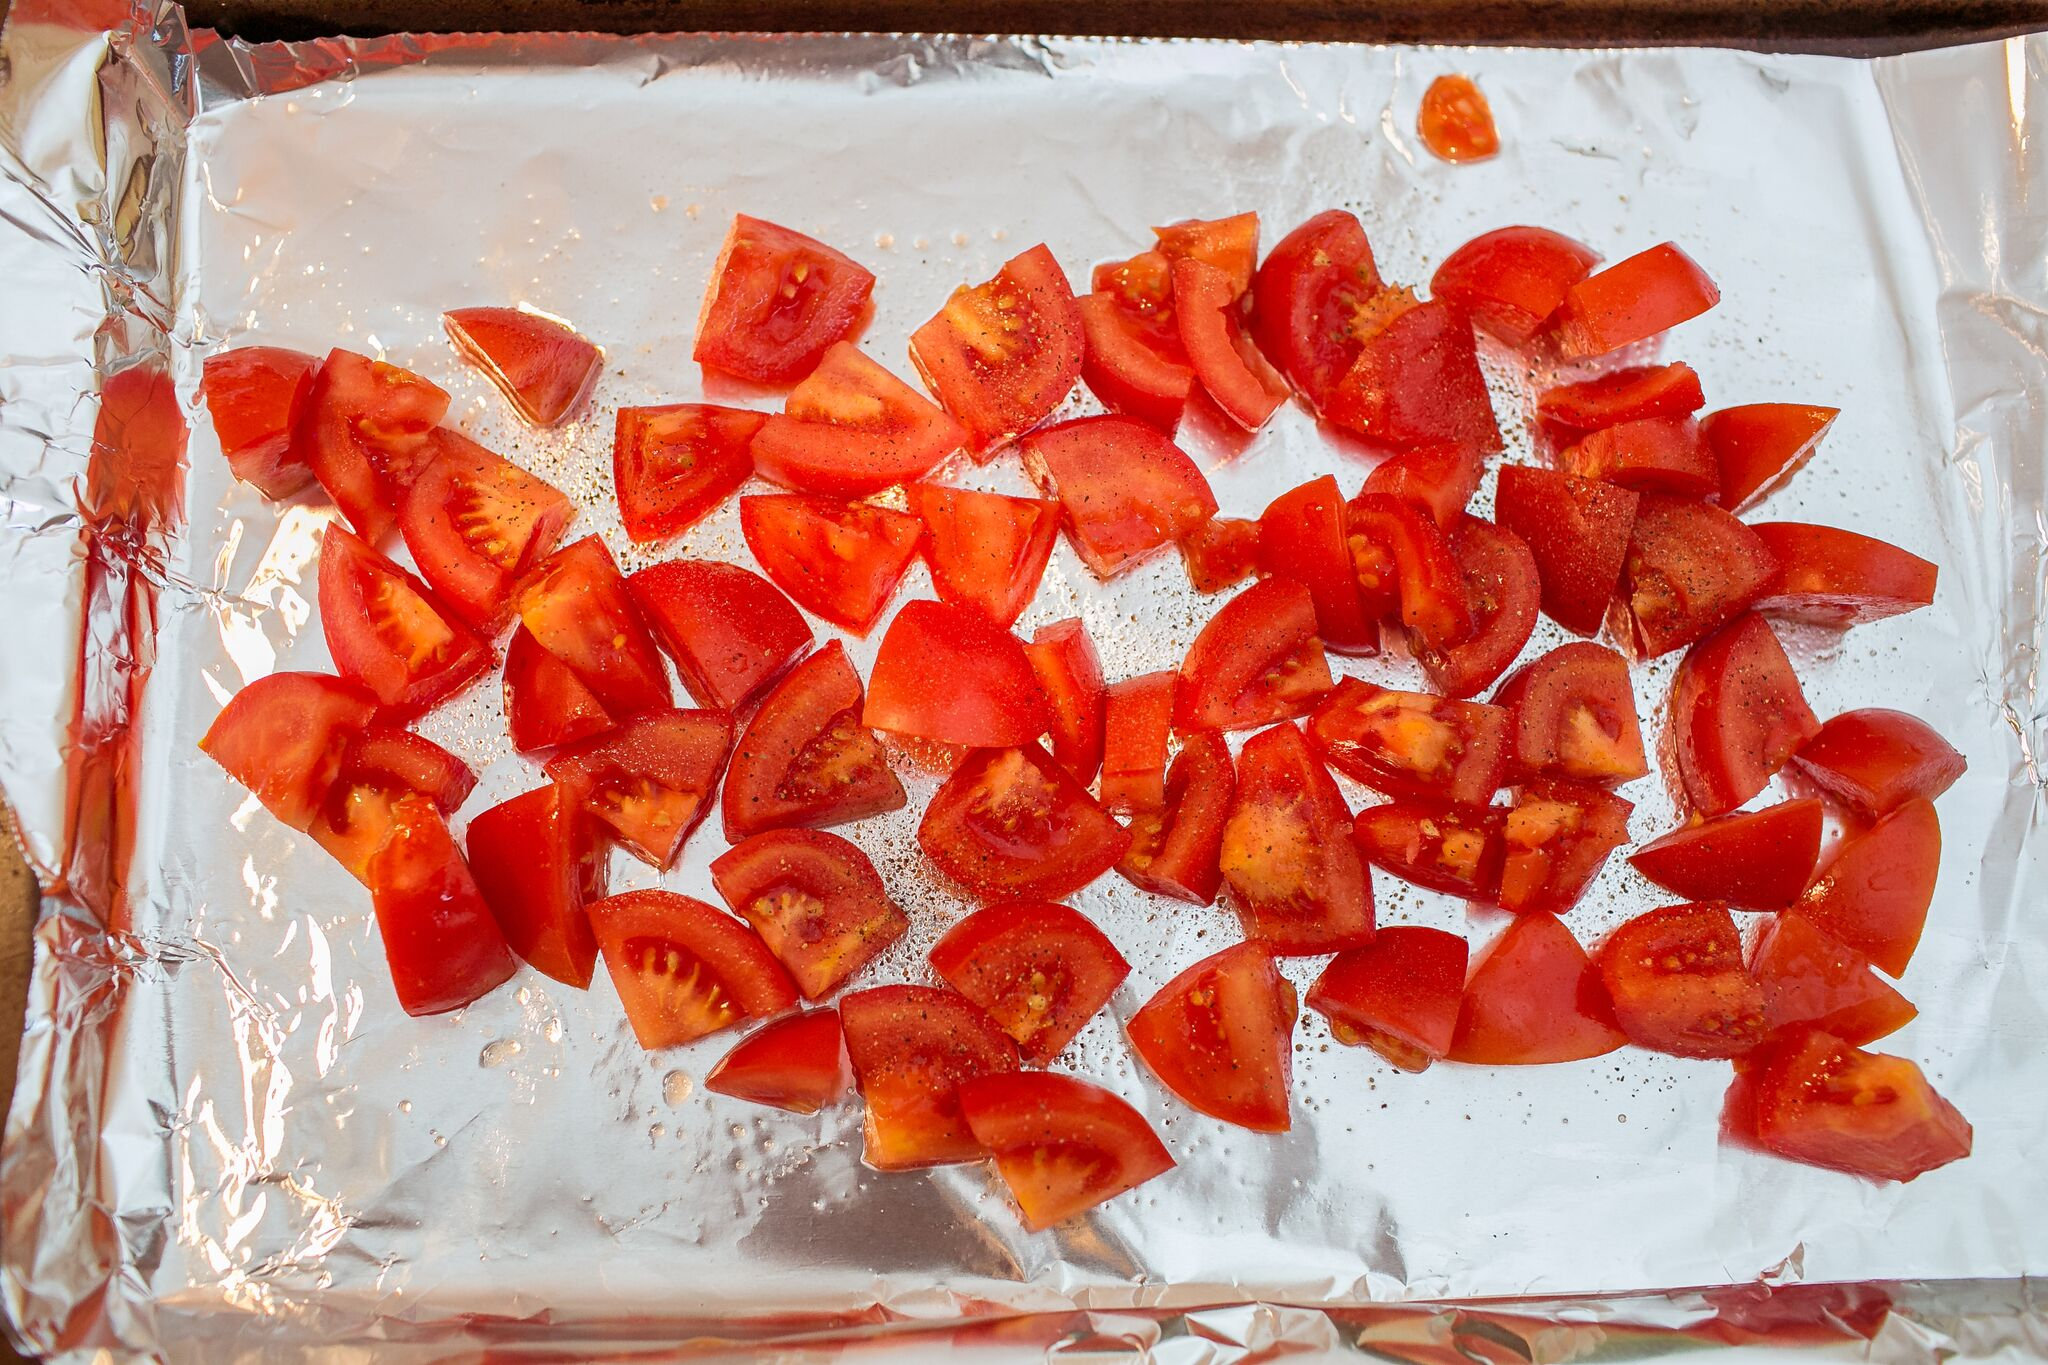 Arrange chopped tomatoes on foil lined pan with with olive oil and salt and pepper.